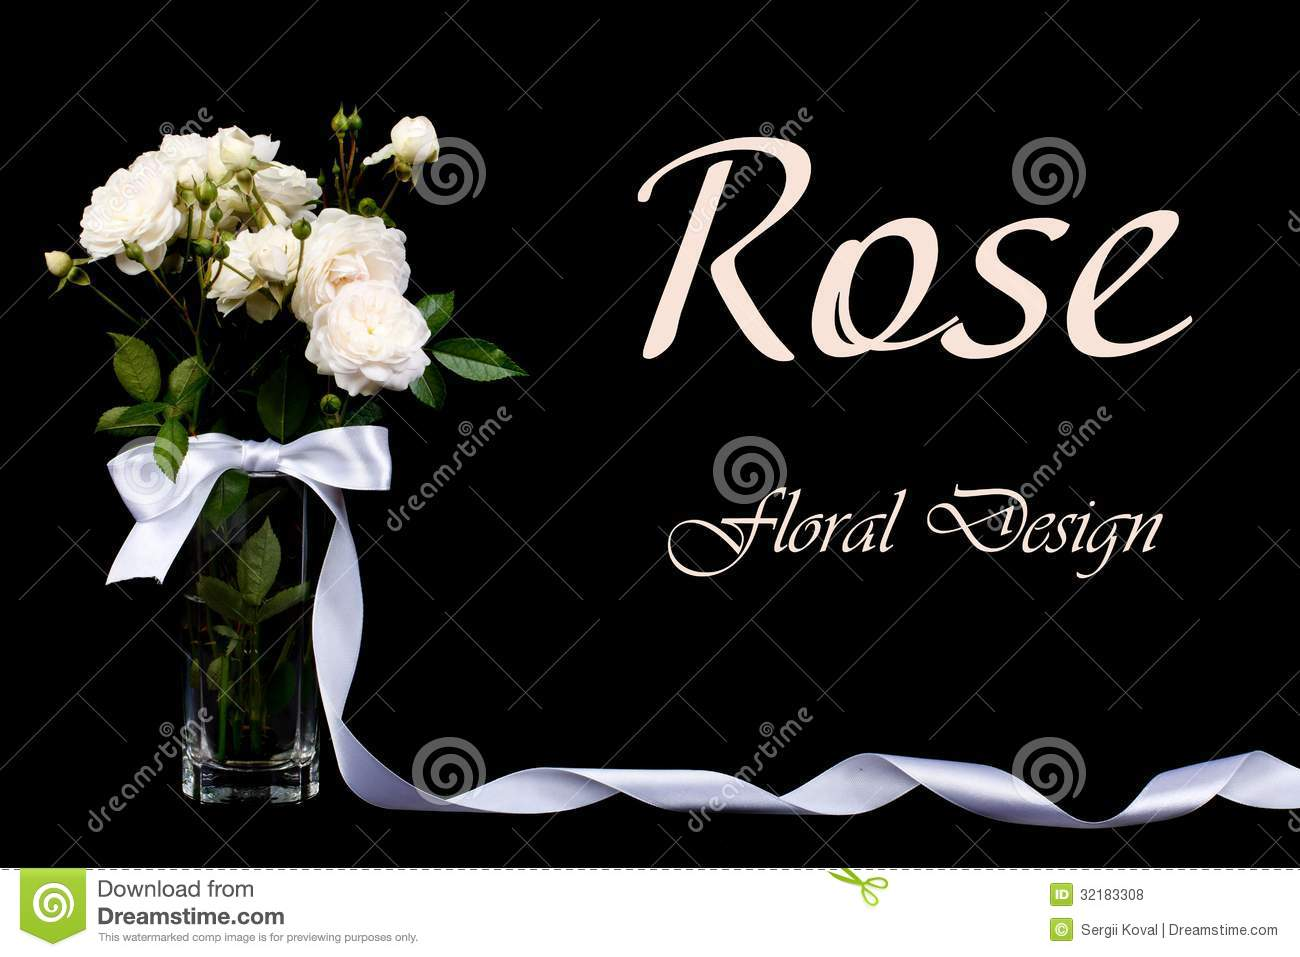 White roses in a vase with a bow on a black stock photo image of white roses in a vase with a bow on a black reviewsmspy